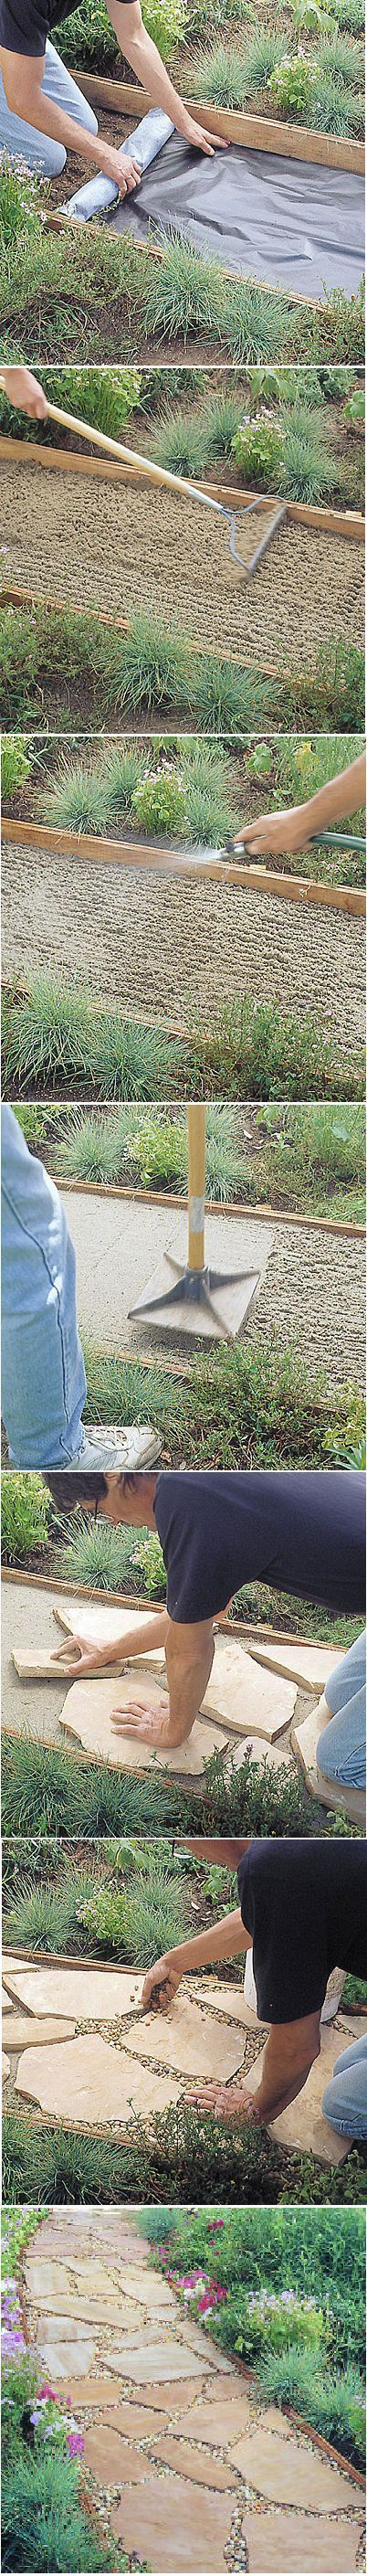 Step 1Install Benderboard Edging First, Then Put Down Landscape Fabric  (available At Nurseries)